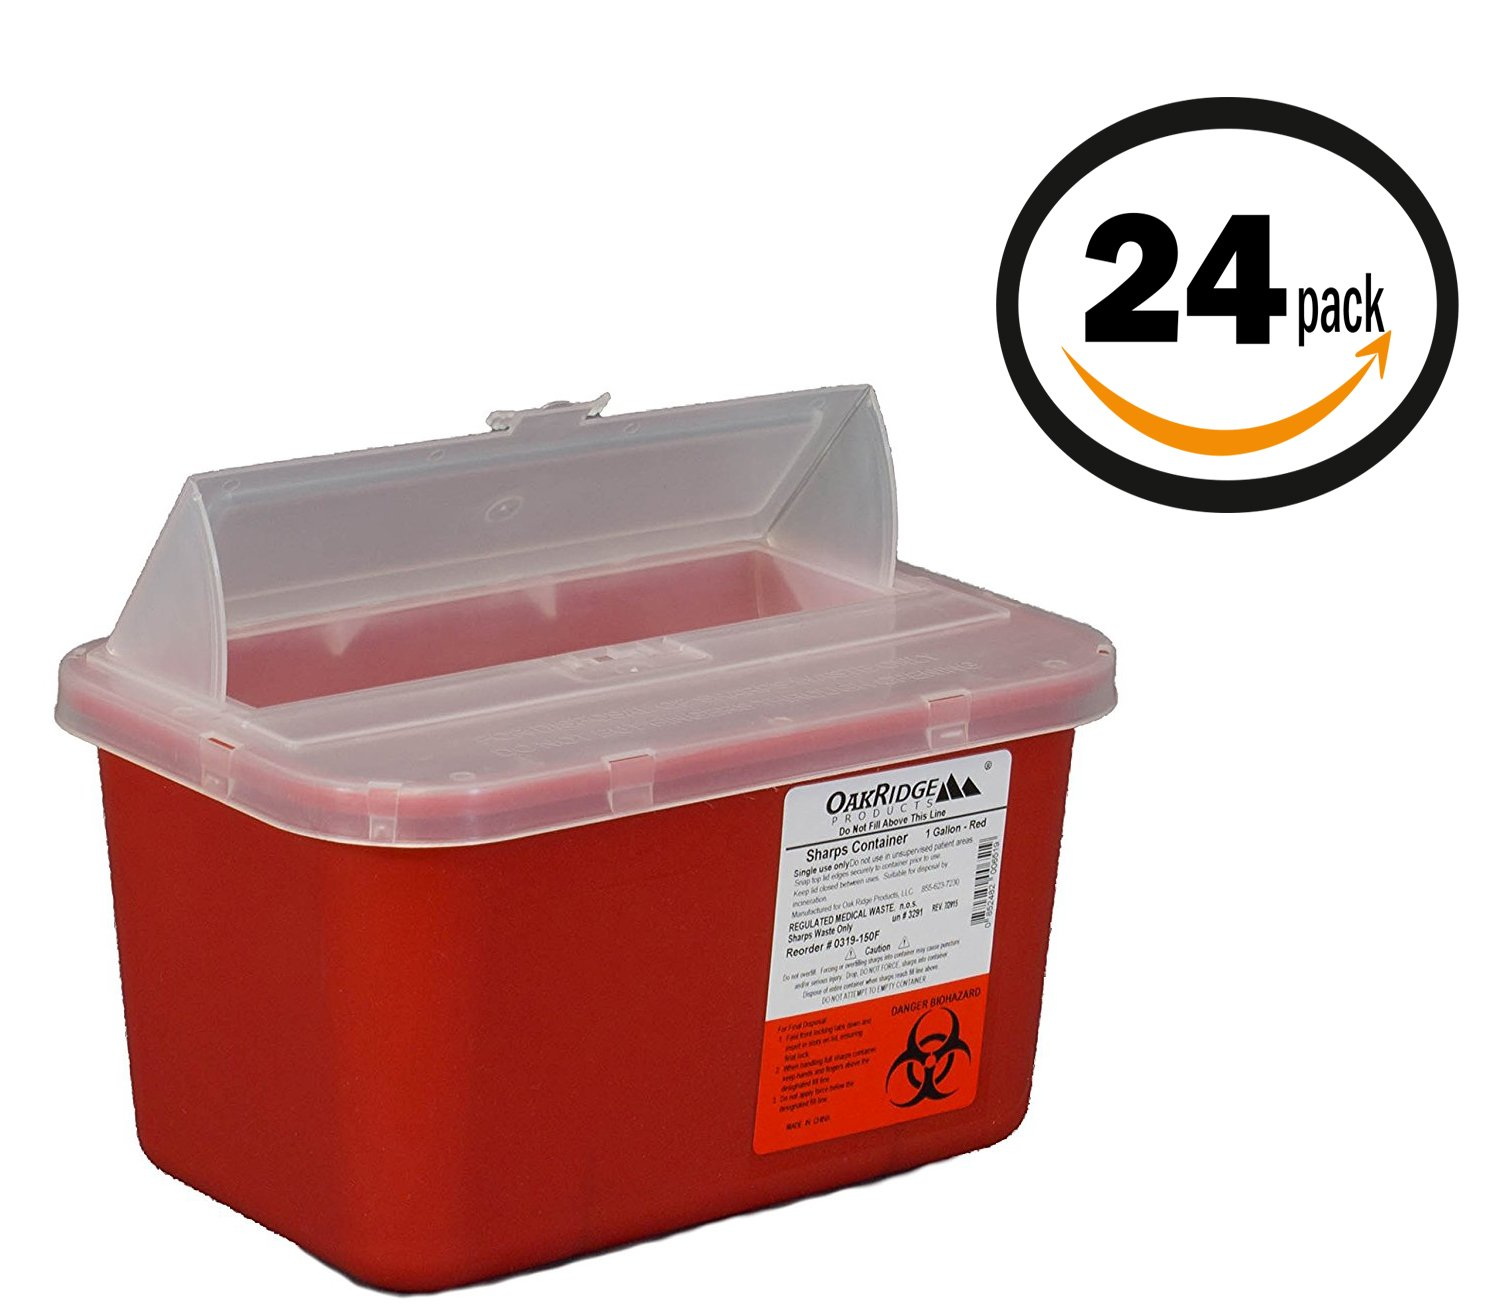 Oakridge Products 1 Gallon Sharps Container (24 Pack) Flip up lid Business bundle | Full case